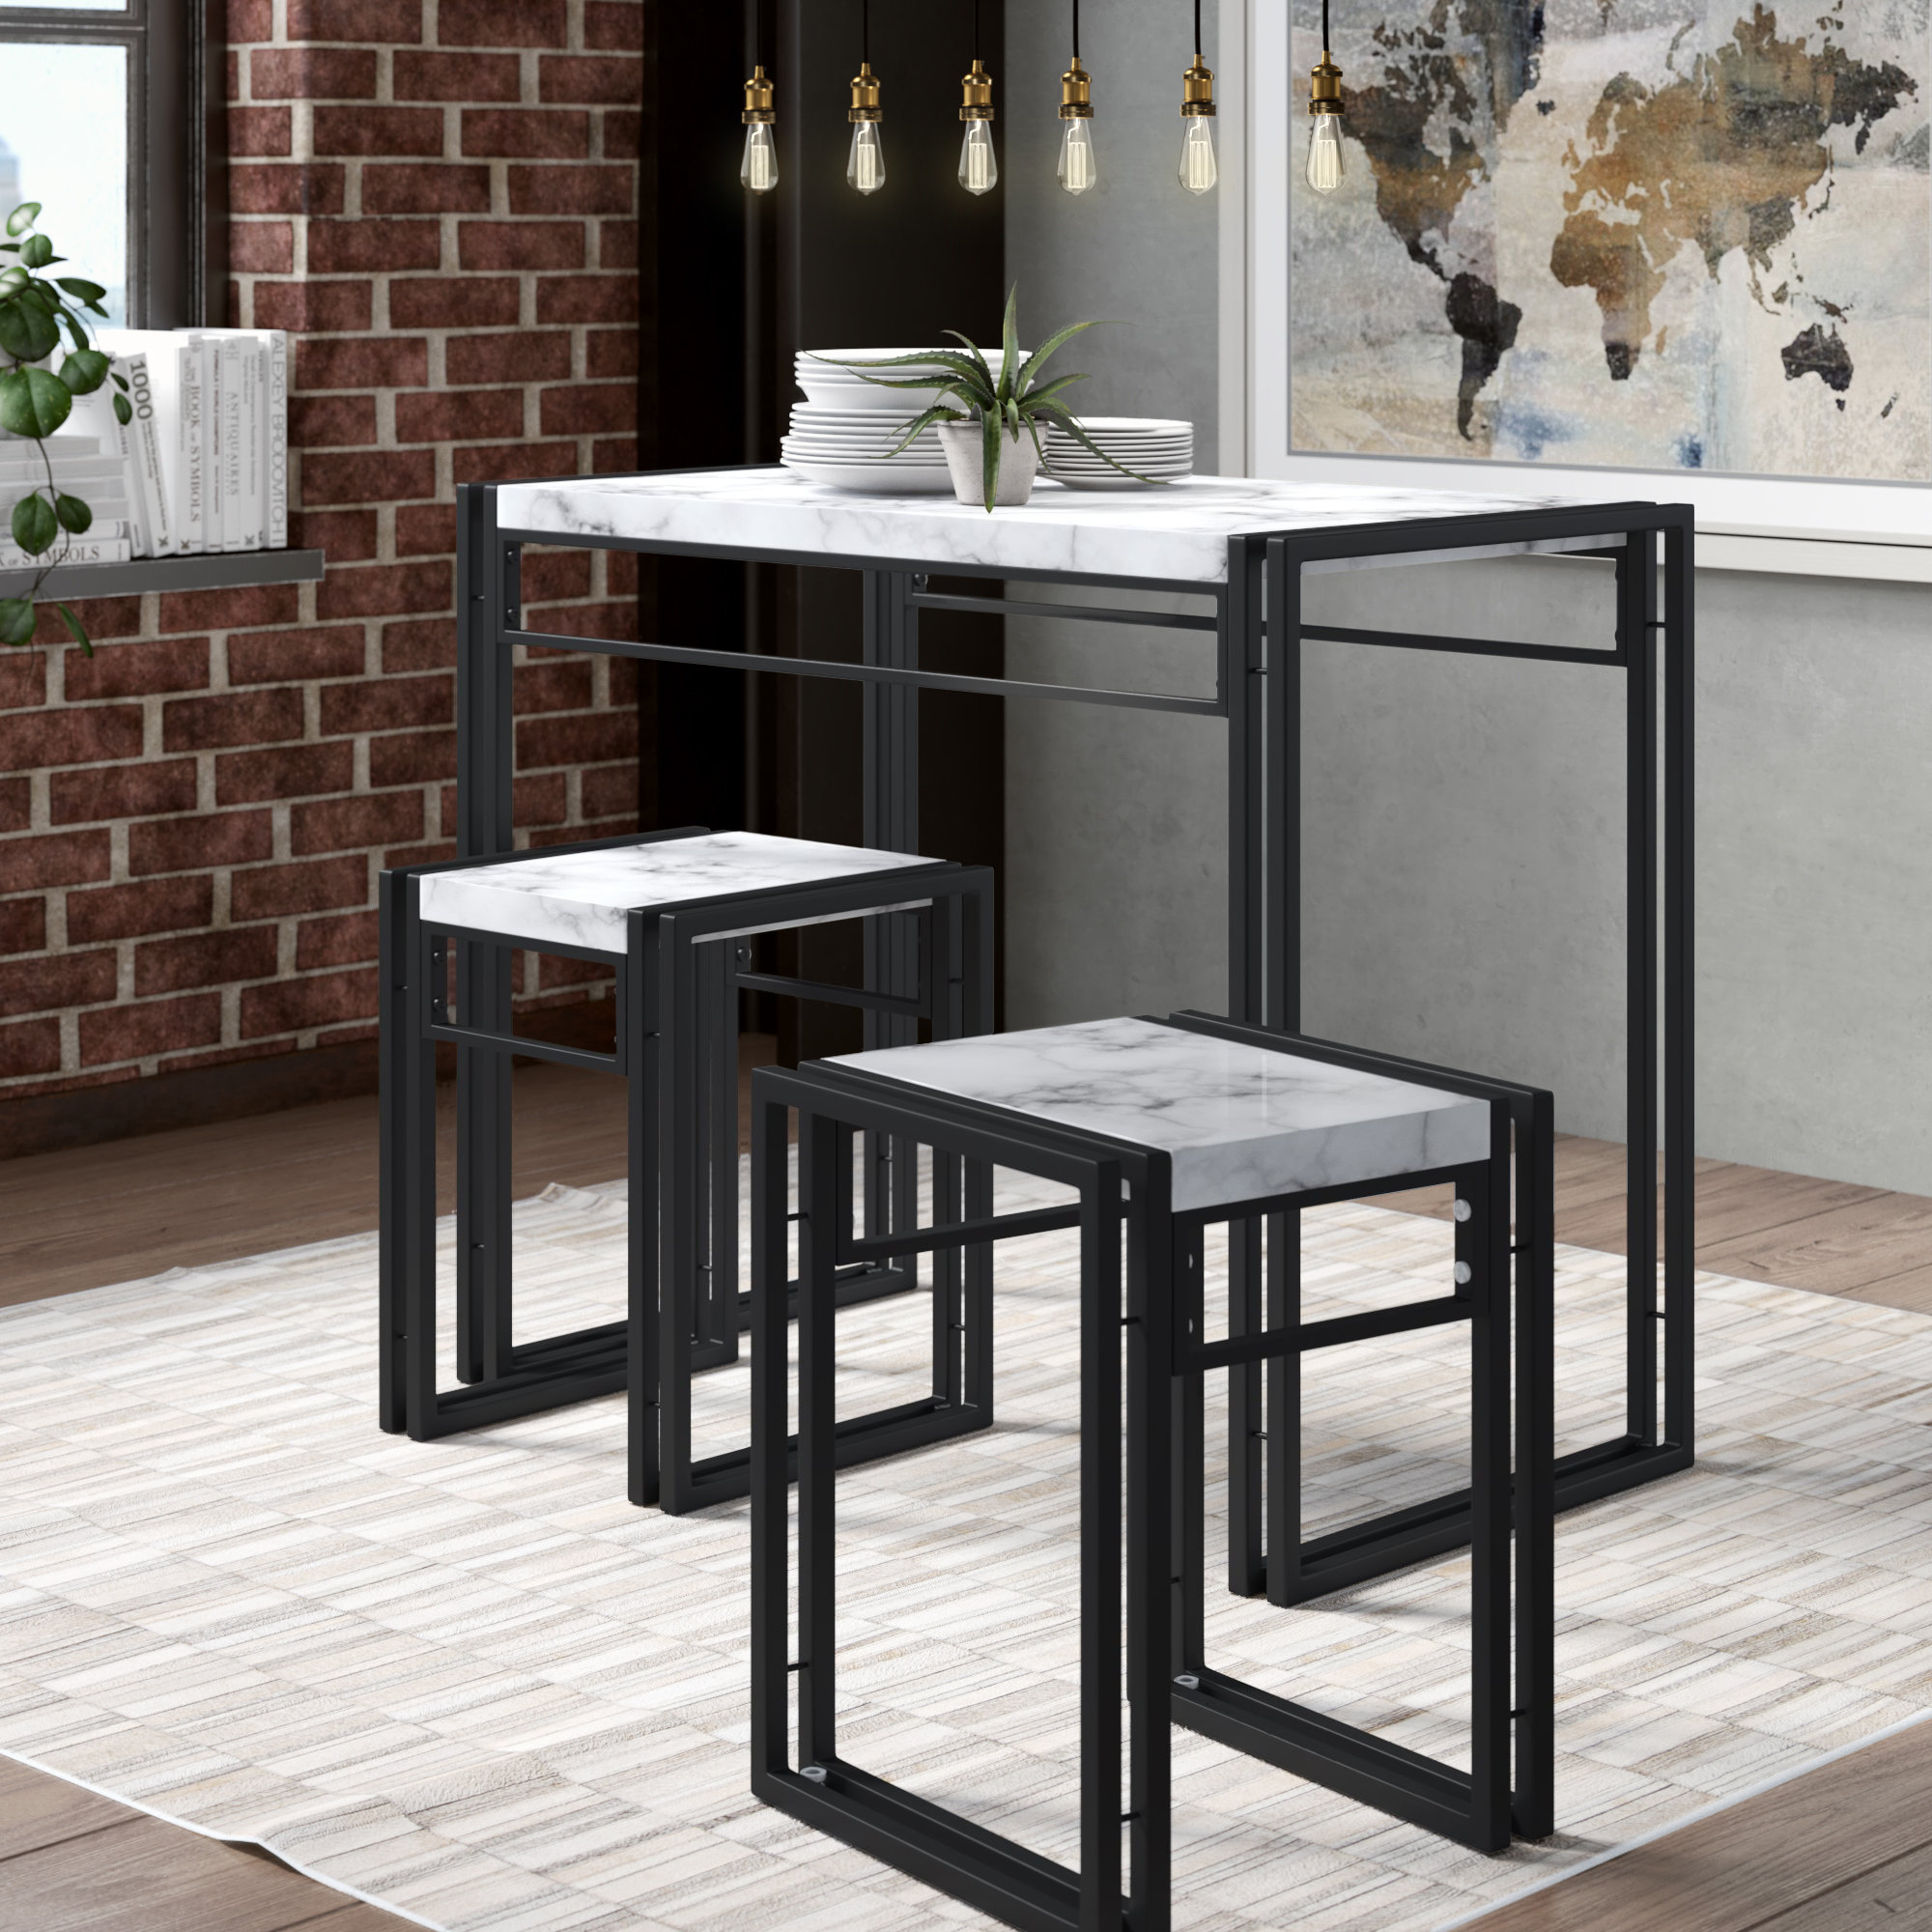 Debby Small Space 3 Piece Dining Set With Regard To Best And Newest Isolde 3 Piece Dining Sets (Photo 7 of 20)